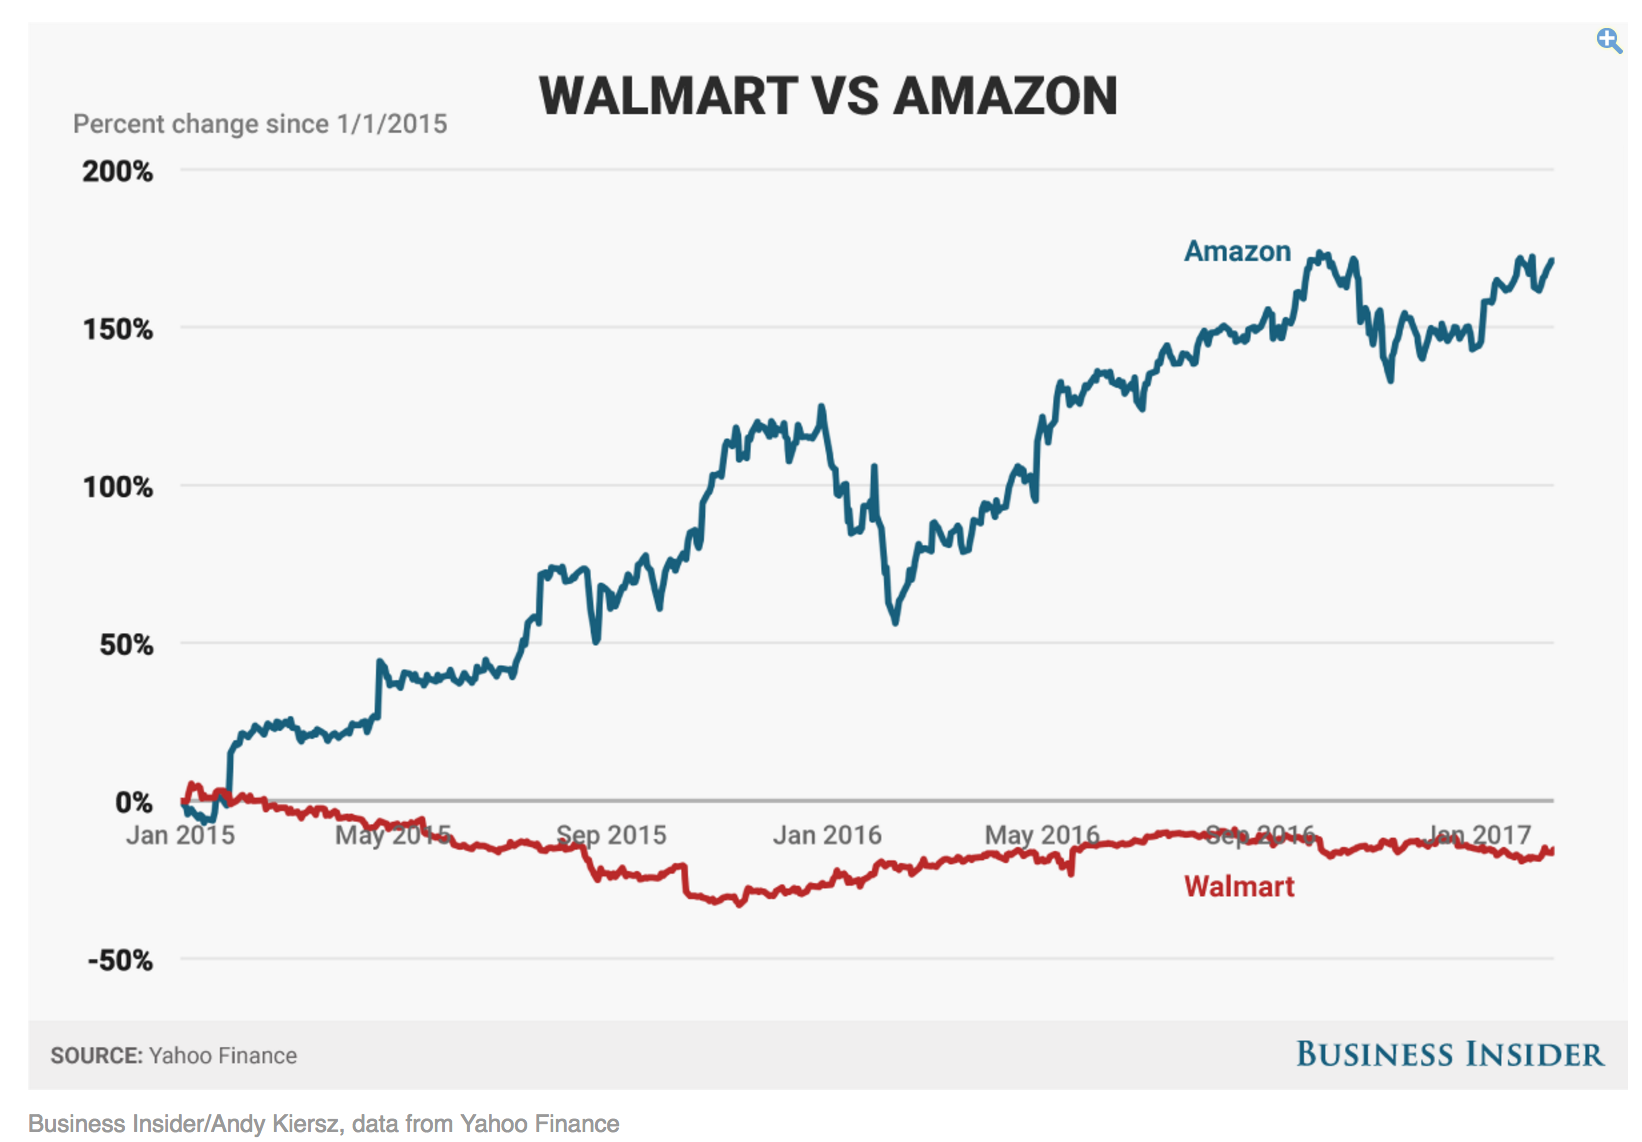 walmart vs amazon graph